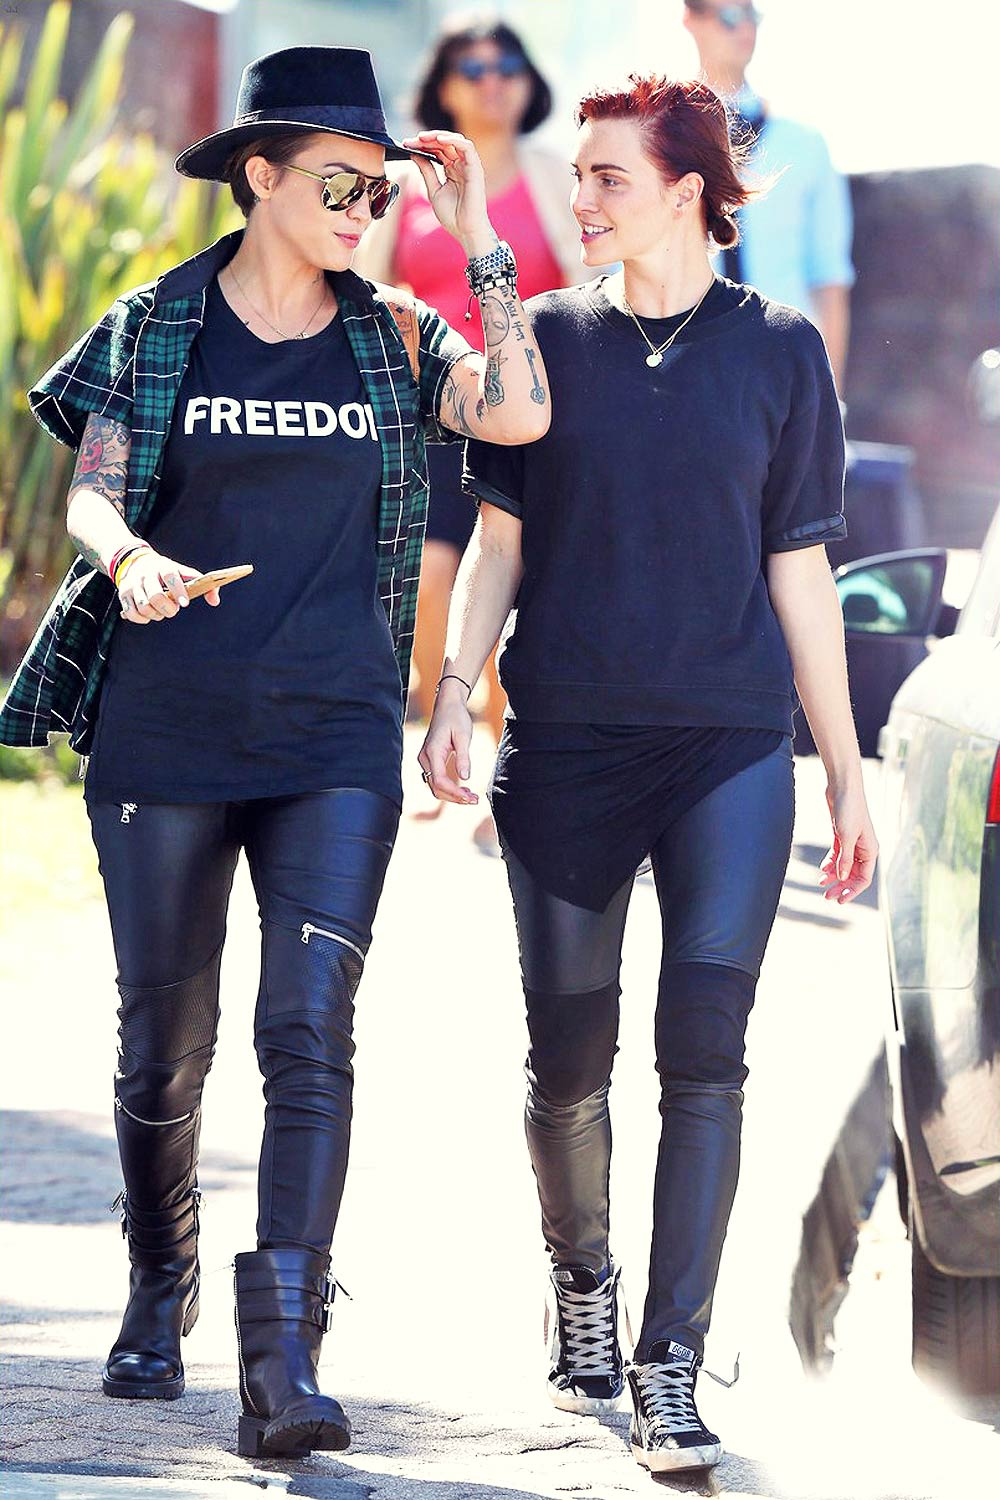 Ruby Rose and her fiancee Phoebe Dahl hold hands